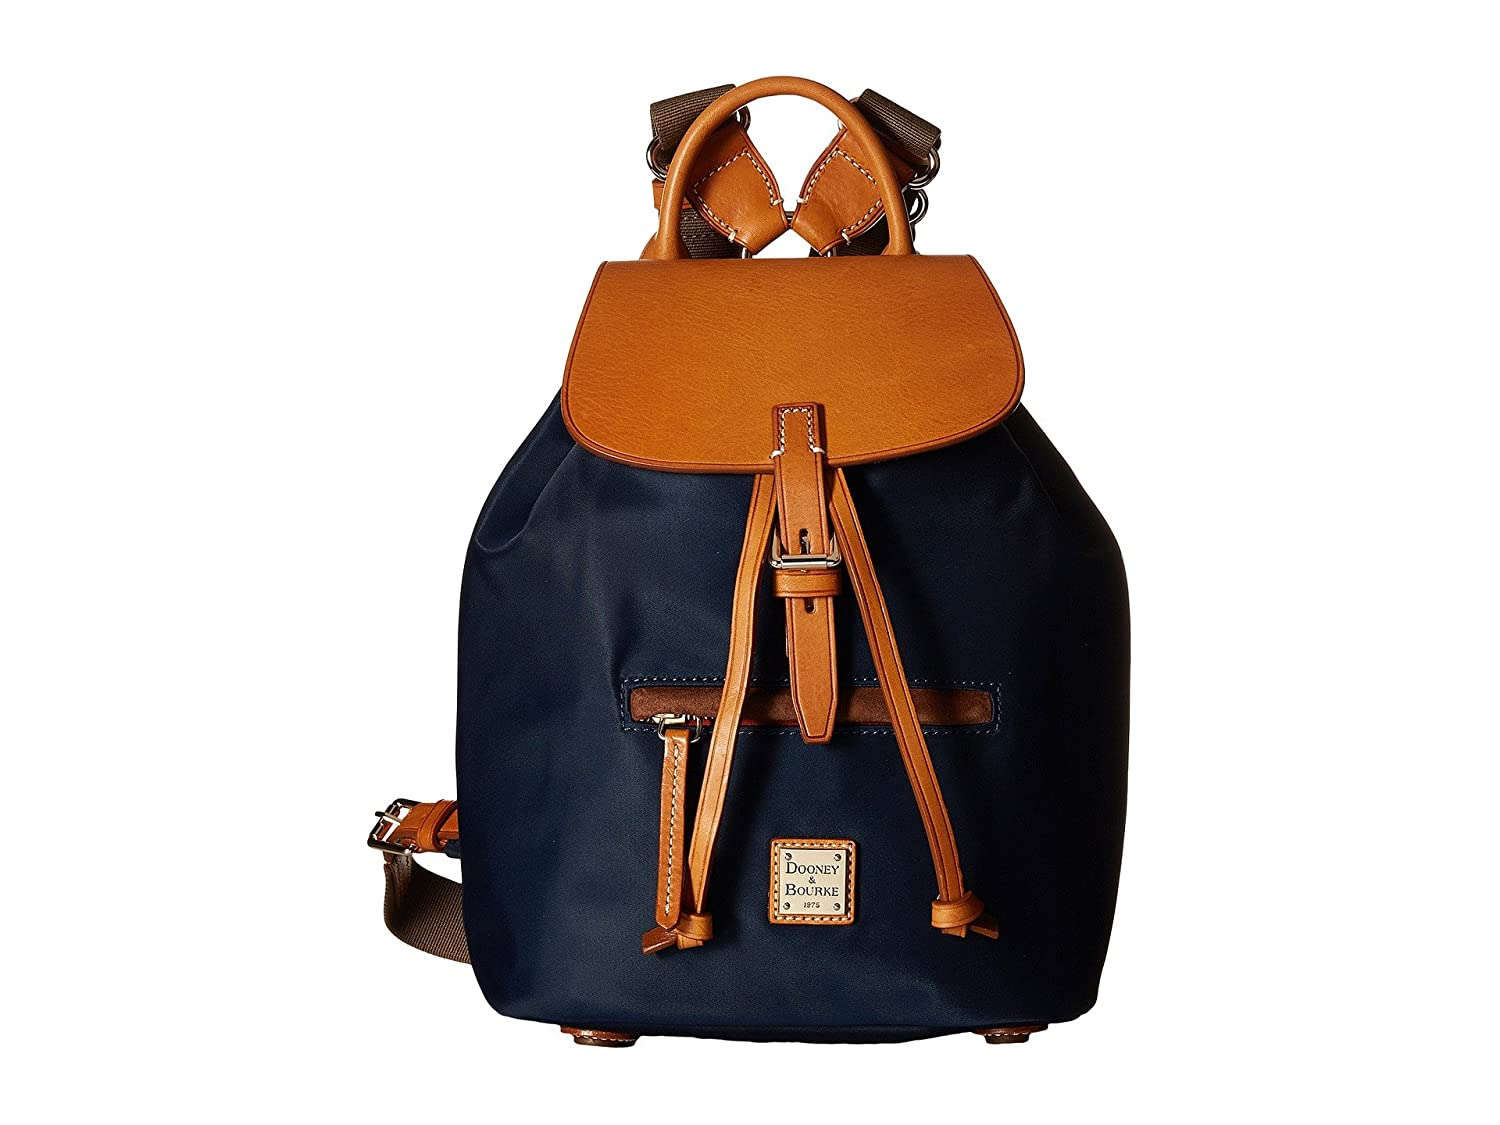 [ドゥニー&バーク] Dooney & Bourke レディース Windham Small Allie Backpack バックパック [並行輸入品] B01NBAXWQ2 Navy/Natural Trim